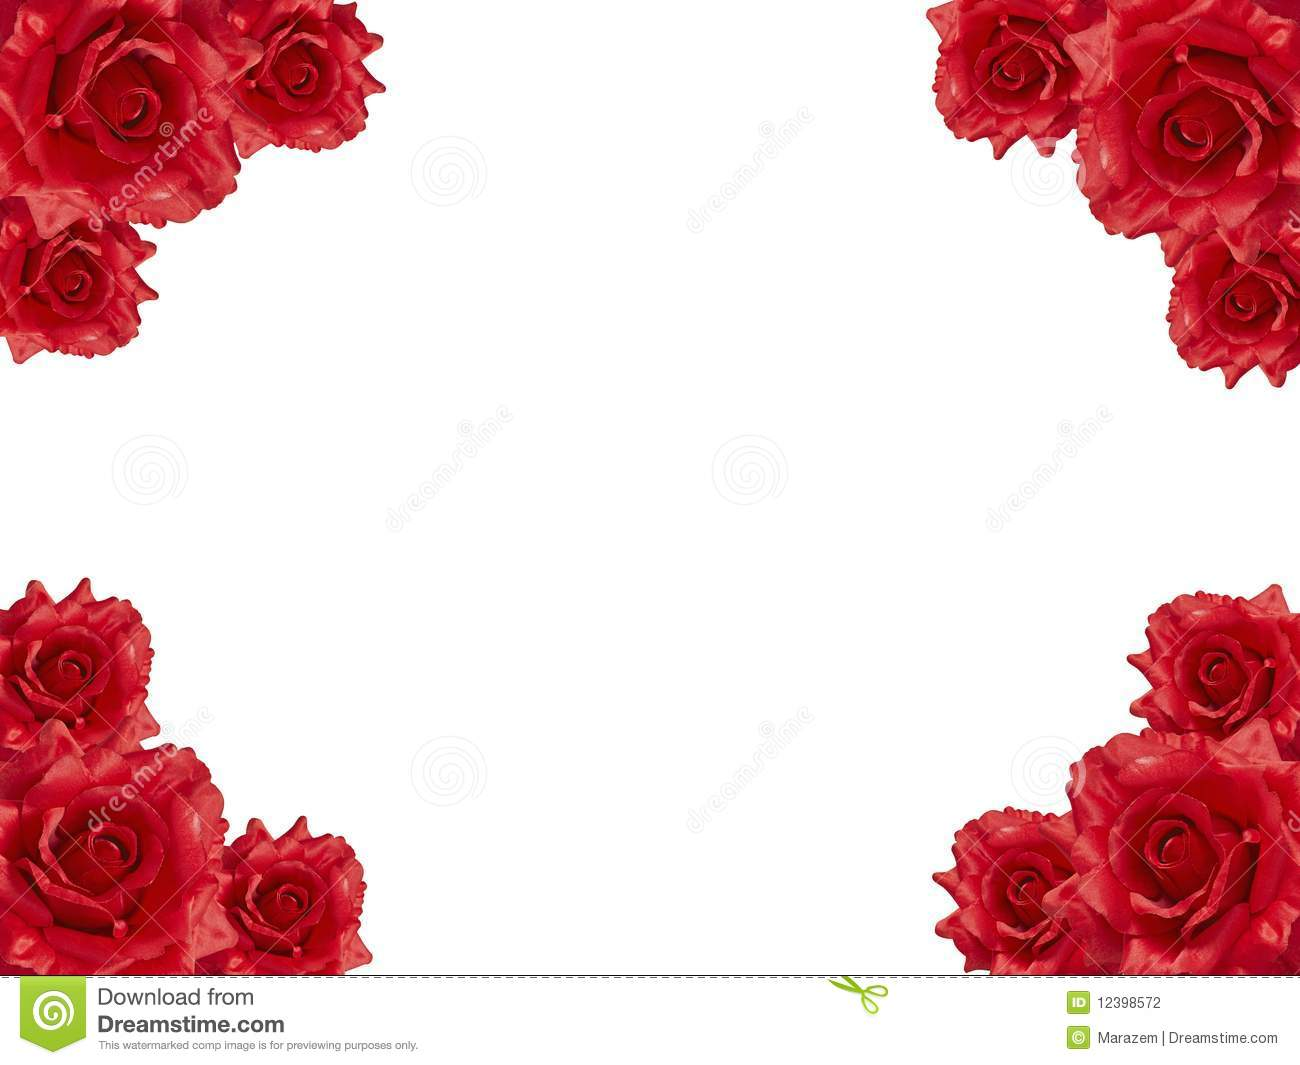 Red rose frame stock photo. Image of gift, invitation - 12398572